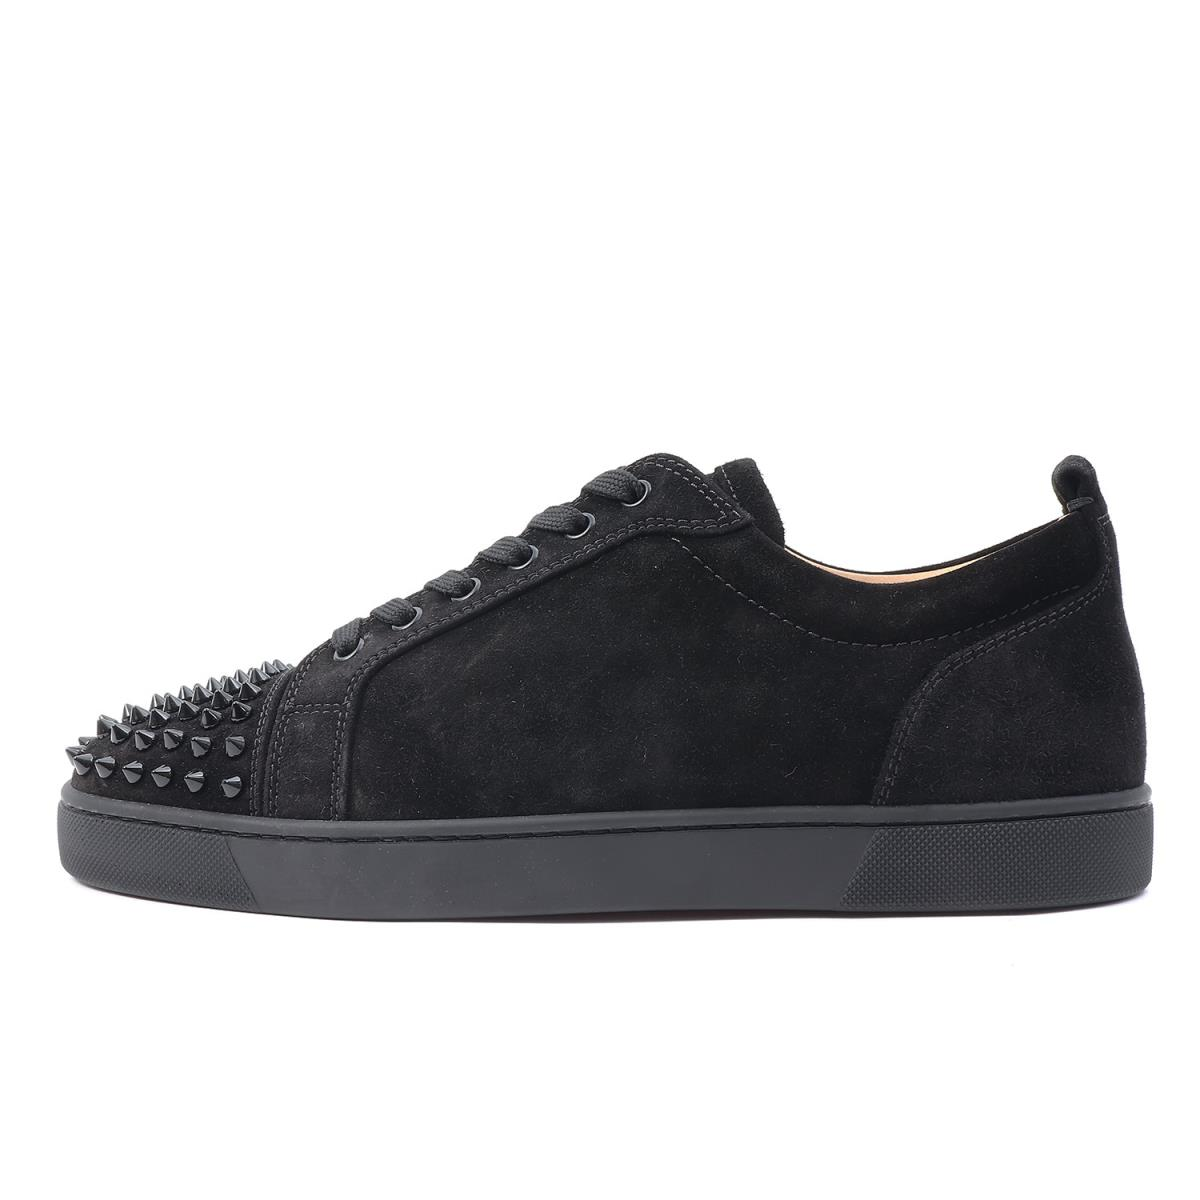 super popular cbf52 6684e Christian Louboutin (クリスチャンルブタン) studs suede cloth leather sneakers (LOUIS  JUNIOR SPIKES FLAT VEAU VELOURS) black 42 1/2